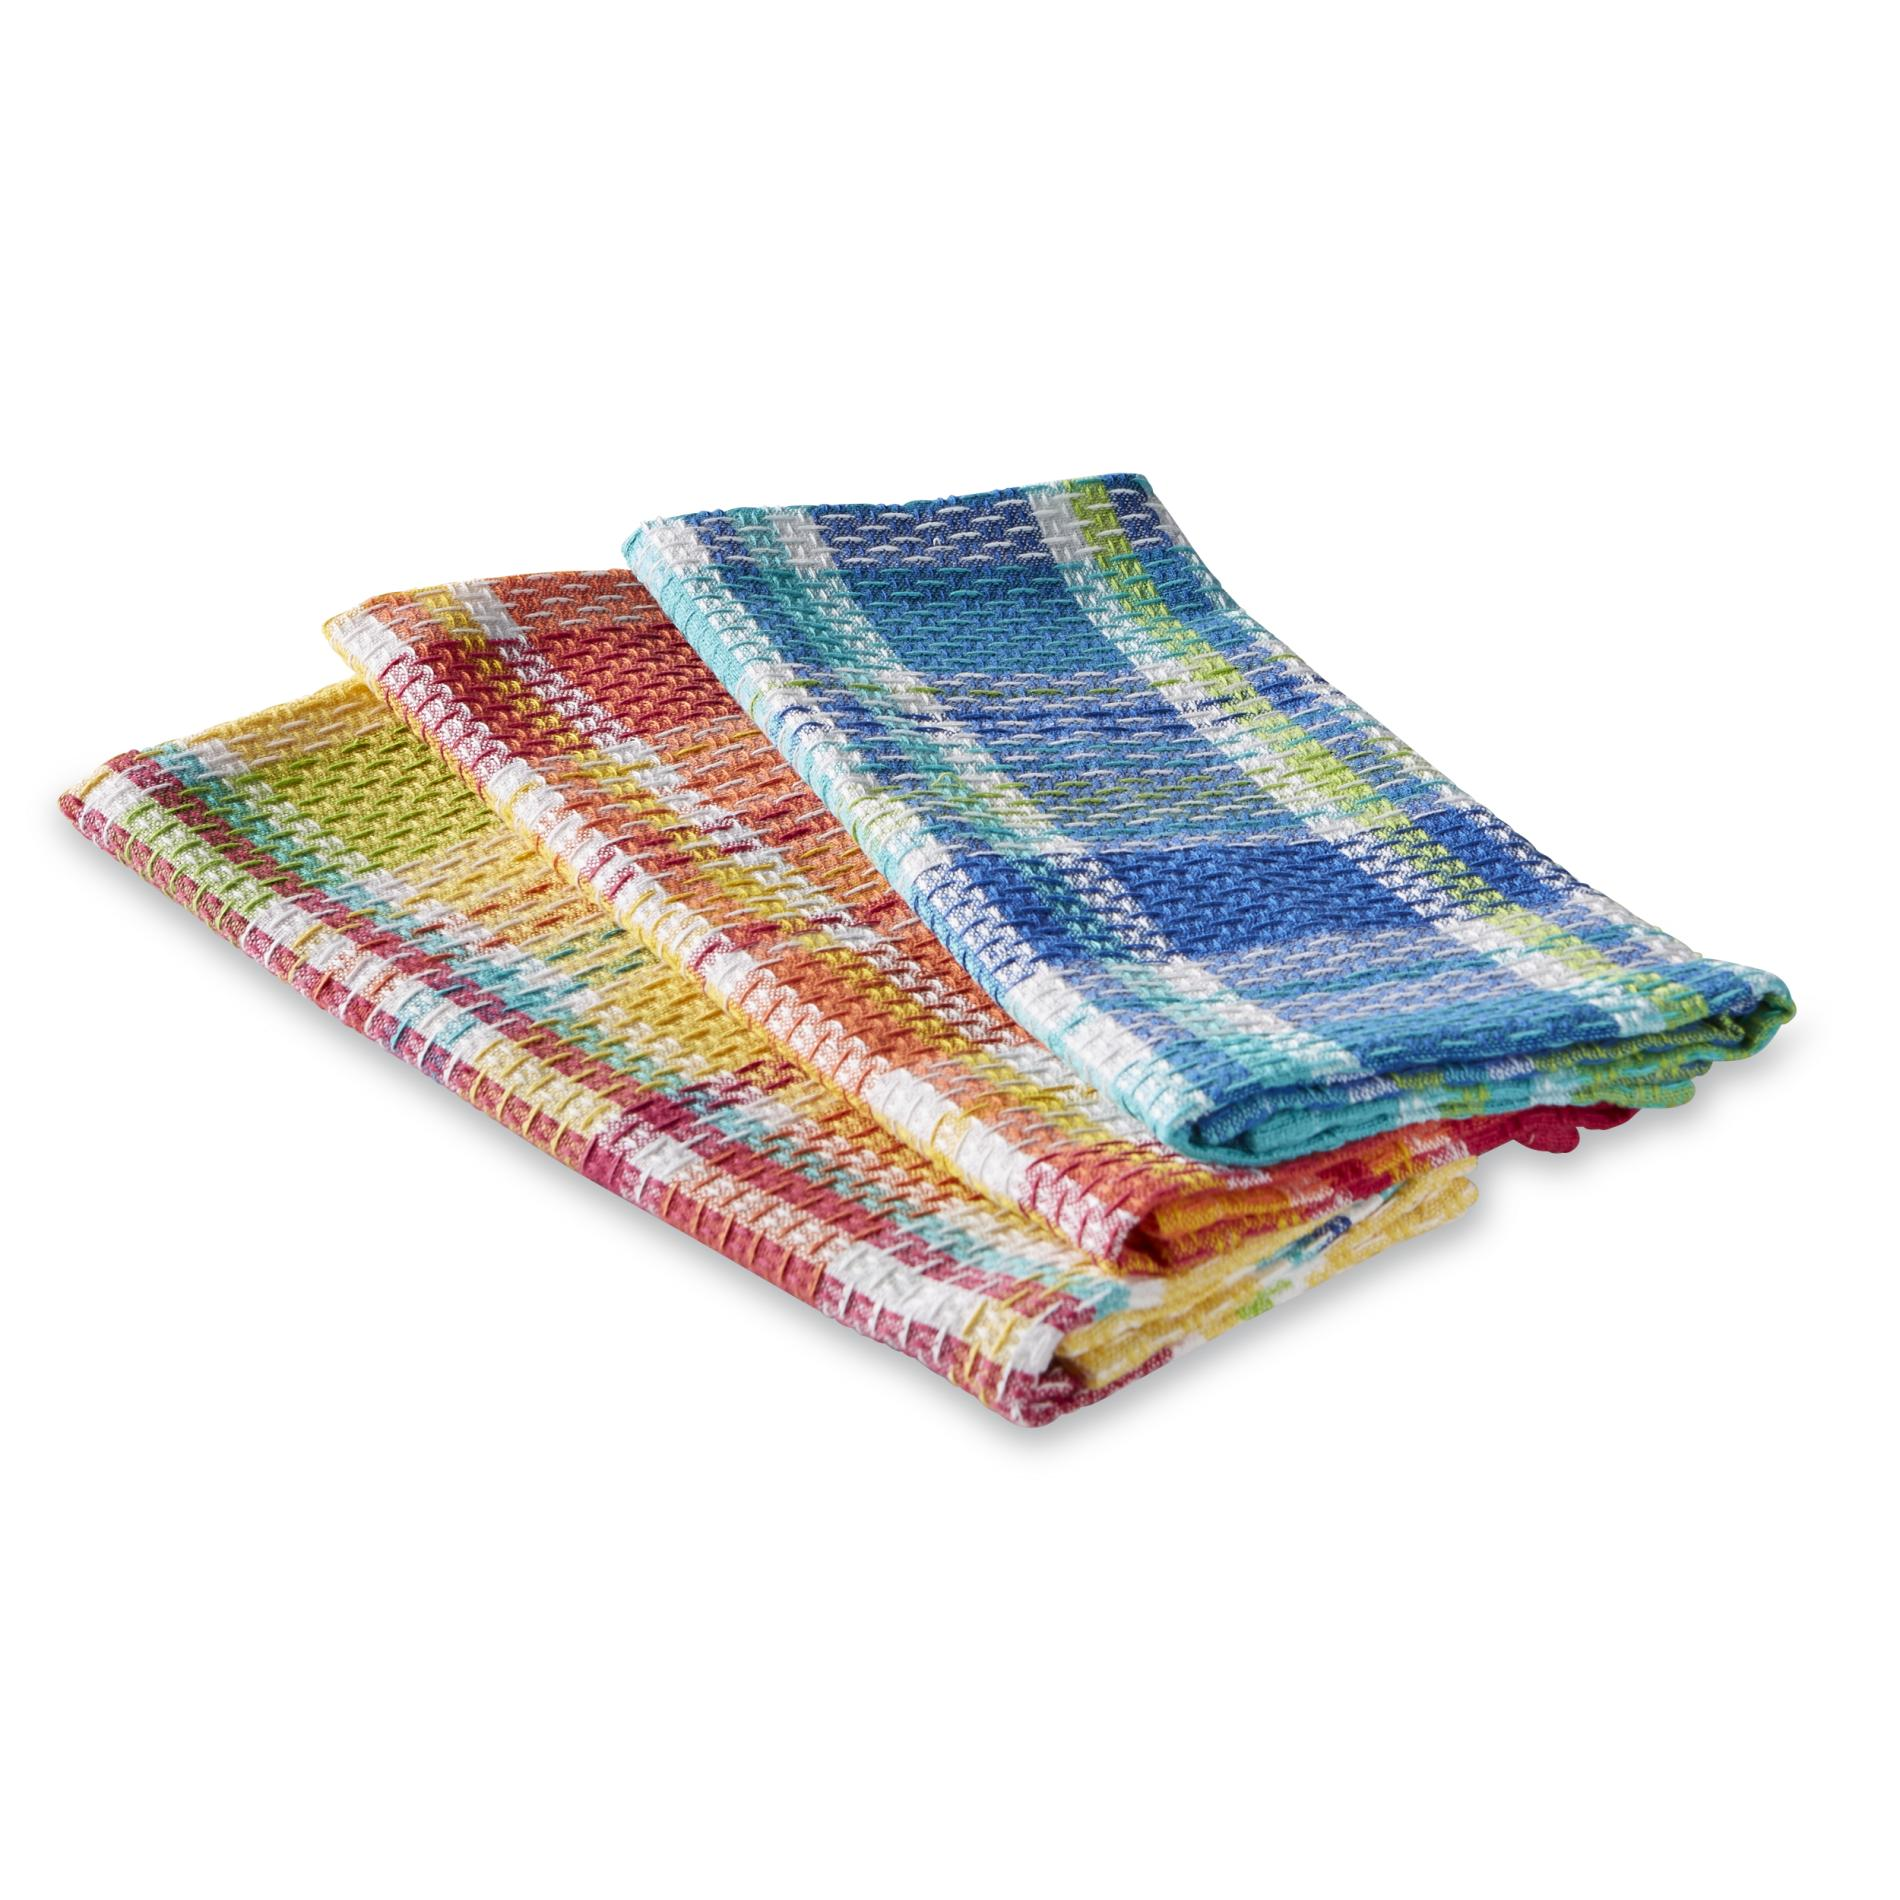 Essential Home 3-Pack Waffle Knit Dish Towels - Plaid